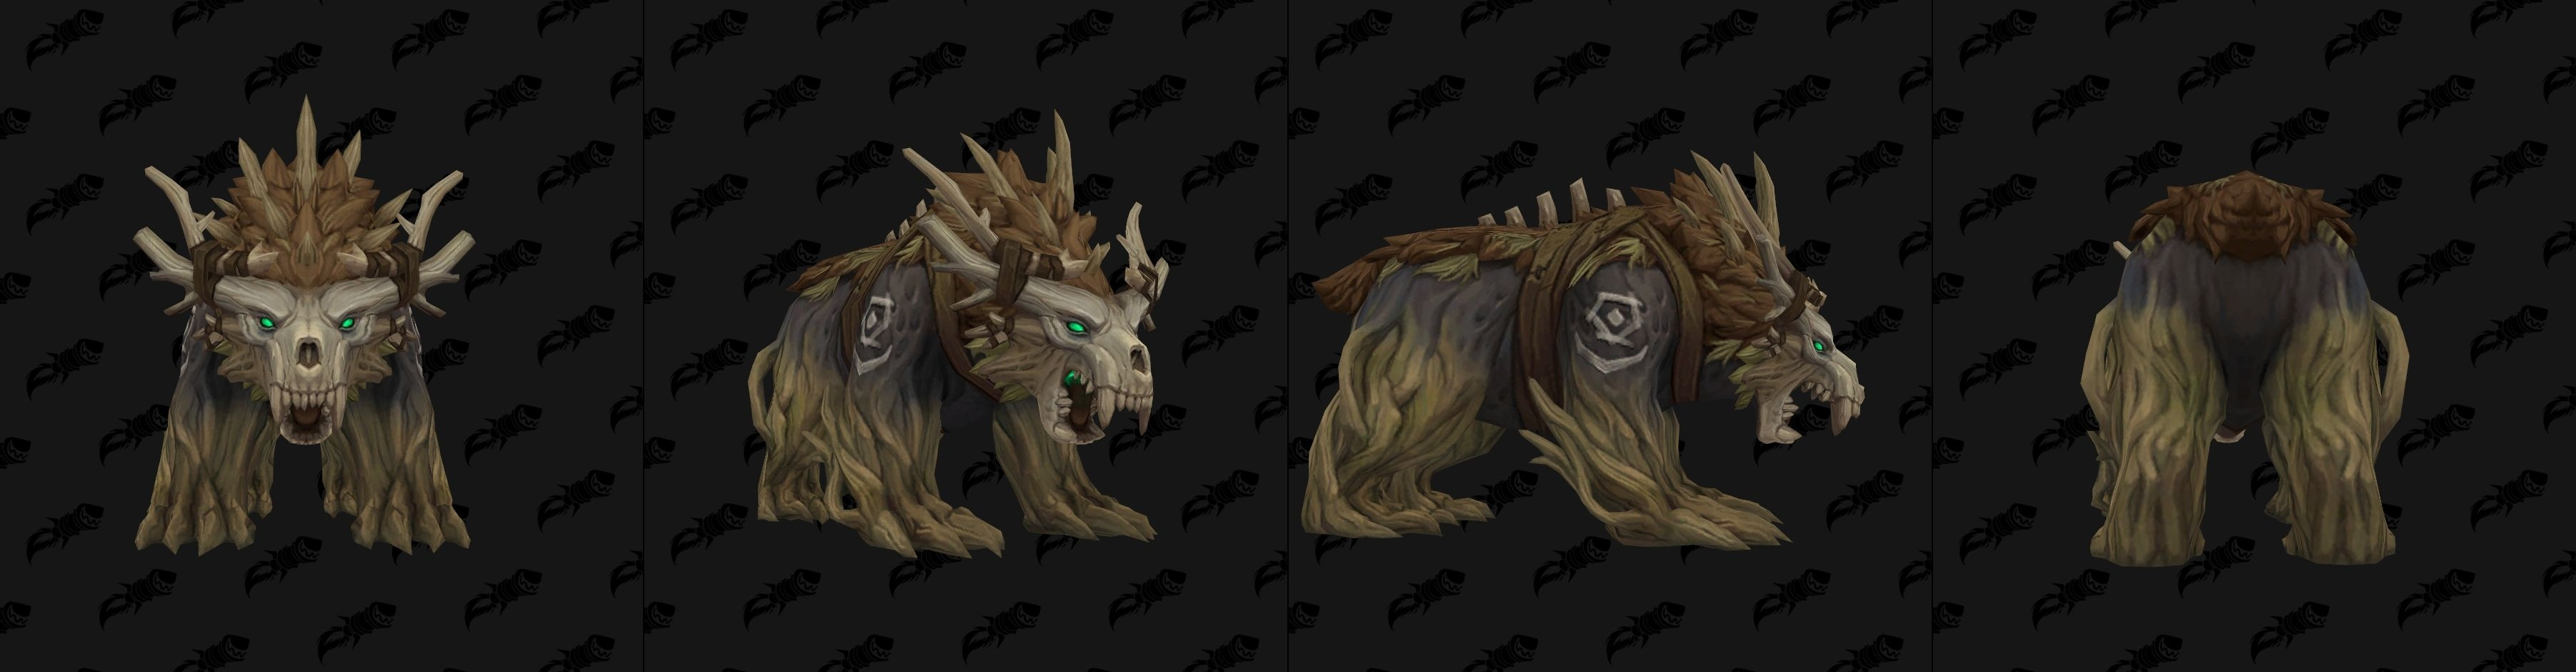 Forme d'ours pour humain de Kul Tiras - coloris marron - Battle for Azeroth